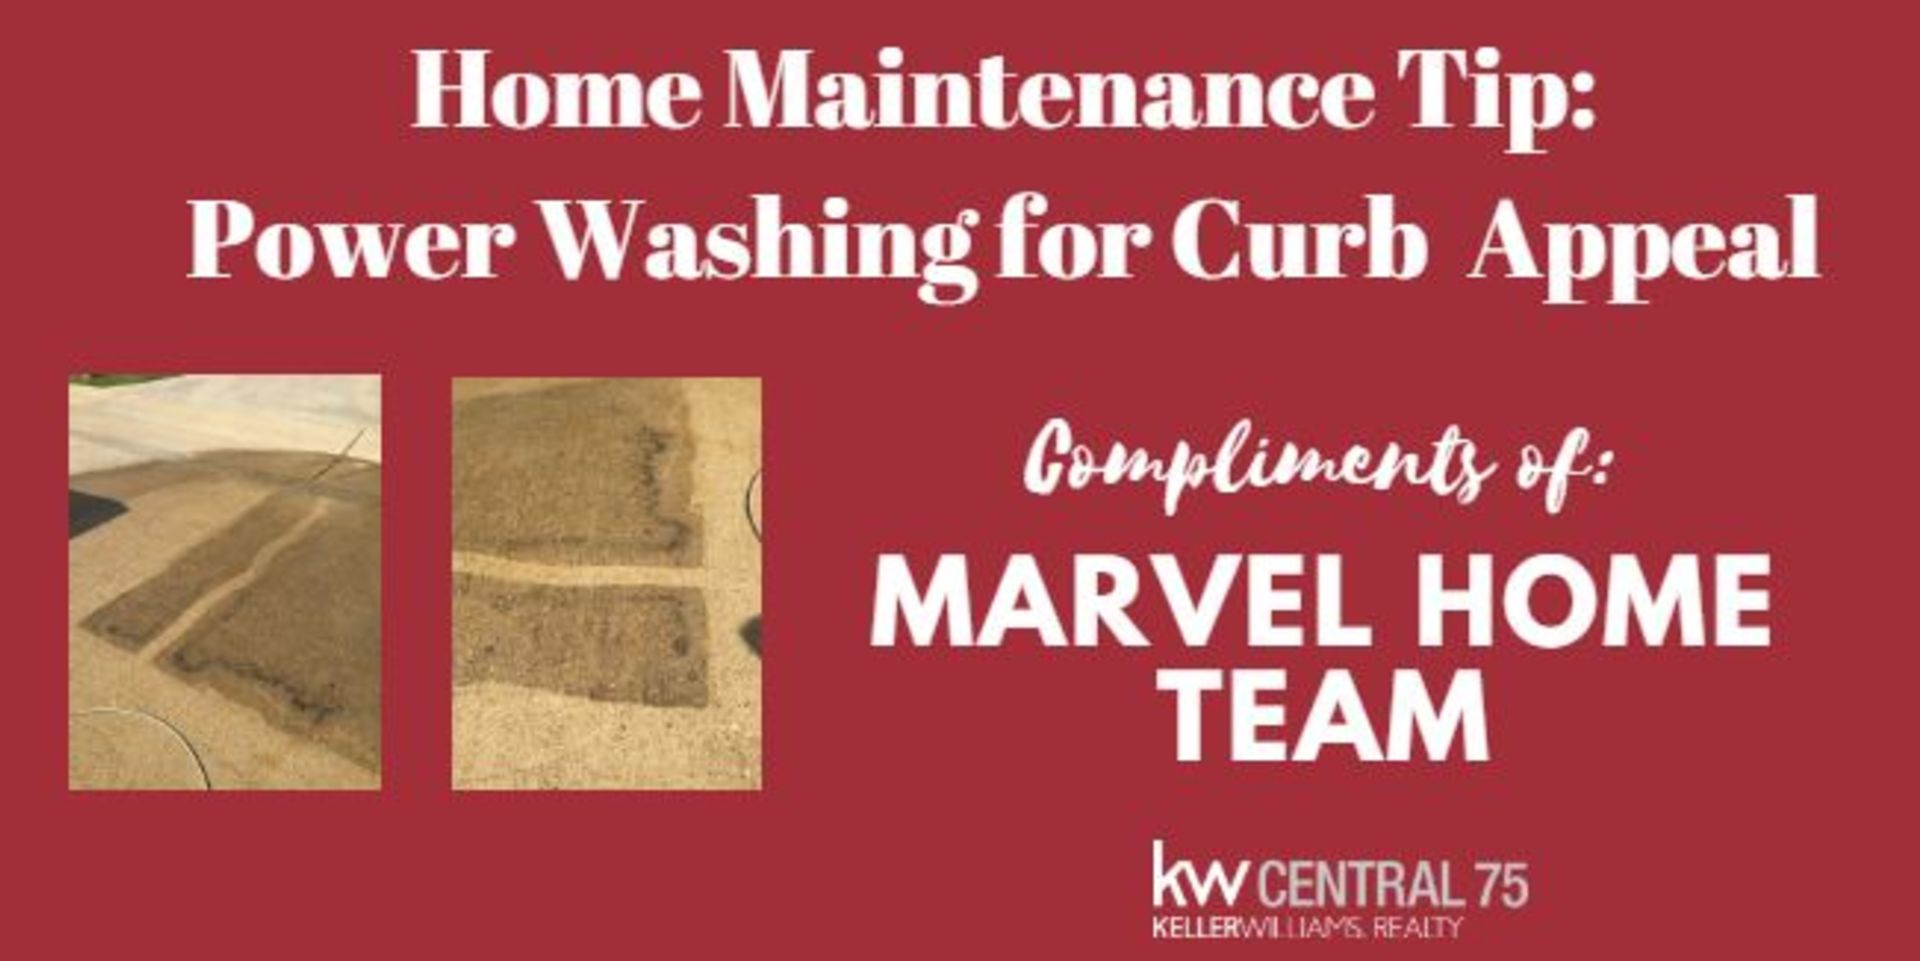 Power Washing For Curb Appeal